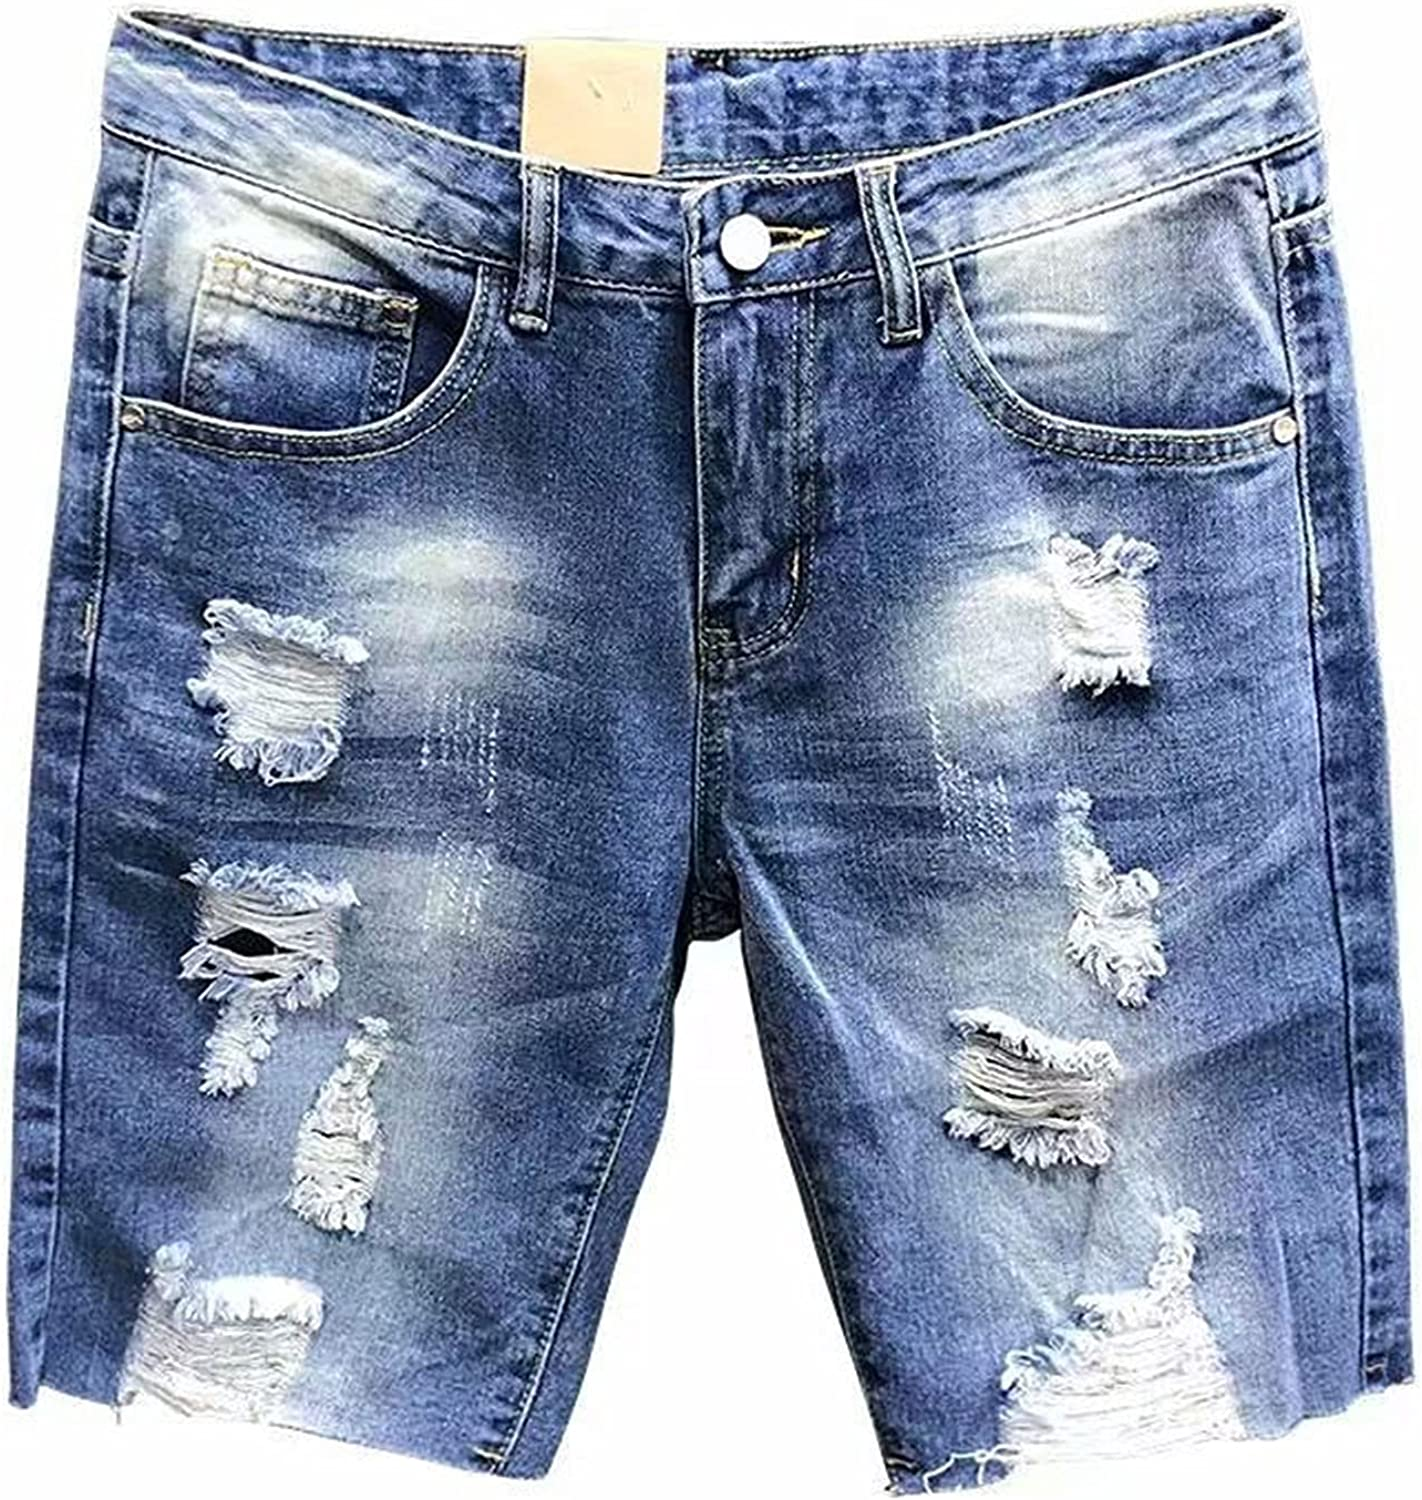 Denim Shorts for Men,Kcocoo Stretchy Frayed Raw Hem Pants Distressed Relaxed Fit Casual Comfortable Sweatpants with Pockets